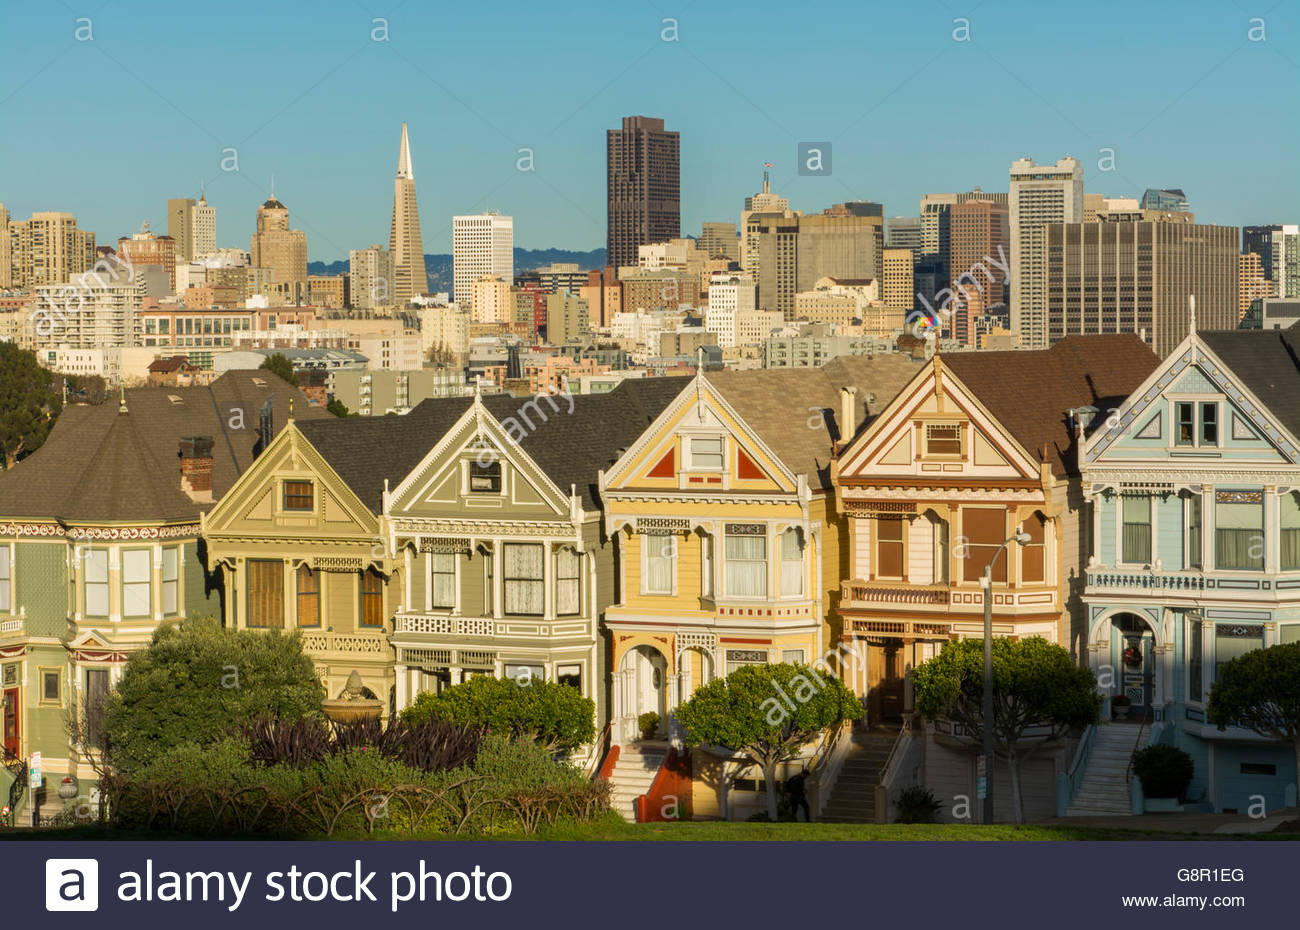 San Francisco California Painted Ladies Victorian homes and city 1300x930